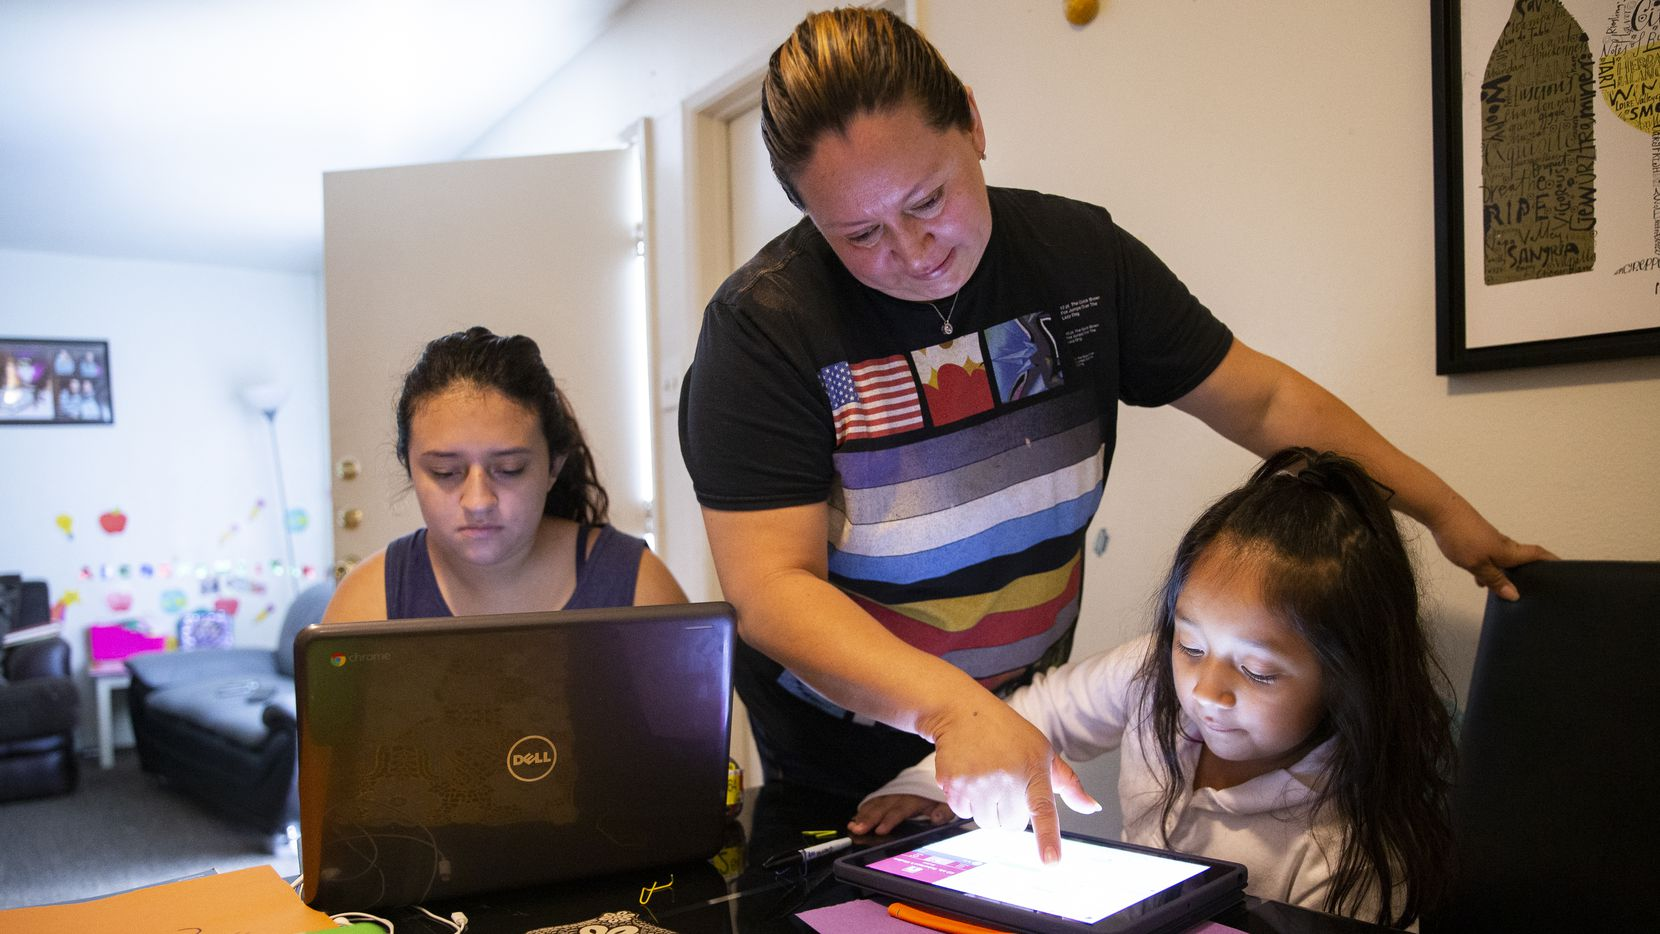 Hebreny Cojulum, 19, attends her Integrated Physics and Chemistry class while mom Adali Arriaza helps sister Daysha Cojulum, 5, upload homework at the kitchen table on Sept. 16, 2020 in Northwest Dallas. The sisters use personal cellphone hotspots to connect after experiencing issues with their DISD hotspots. Texas Senators unanimously supported a proposal on Wednesday to improve internet access throughout the state. (Juan Figueroa/ The Dallas Morning News)